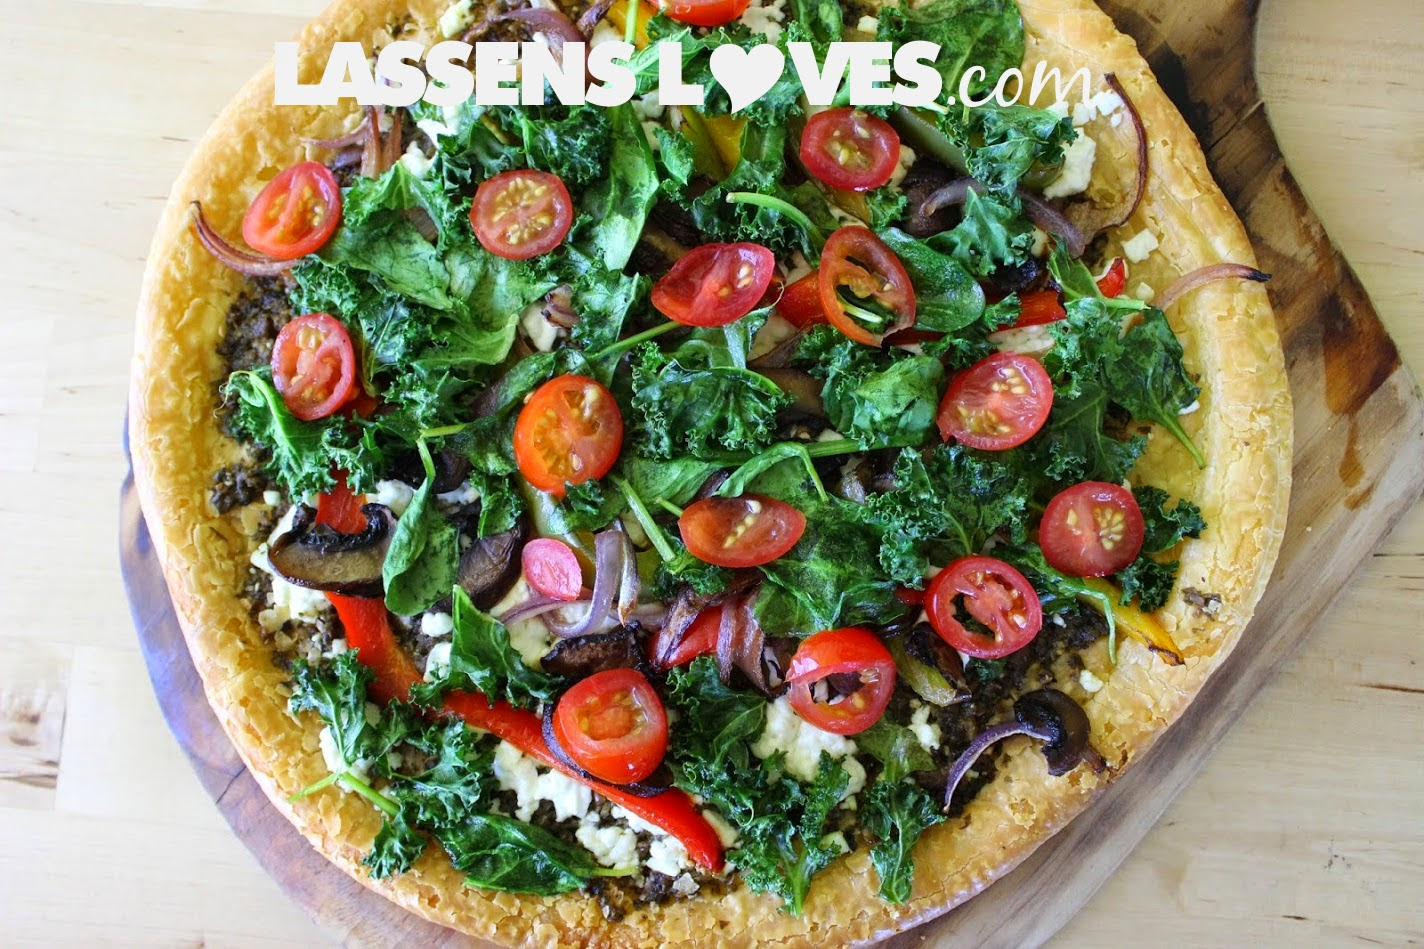 veggie+pizza, pizza+with+greens, gluten+free+pizza